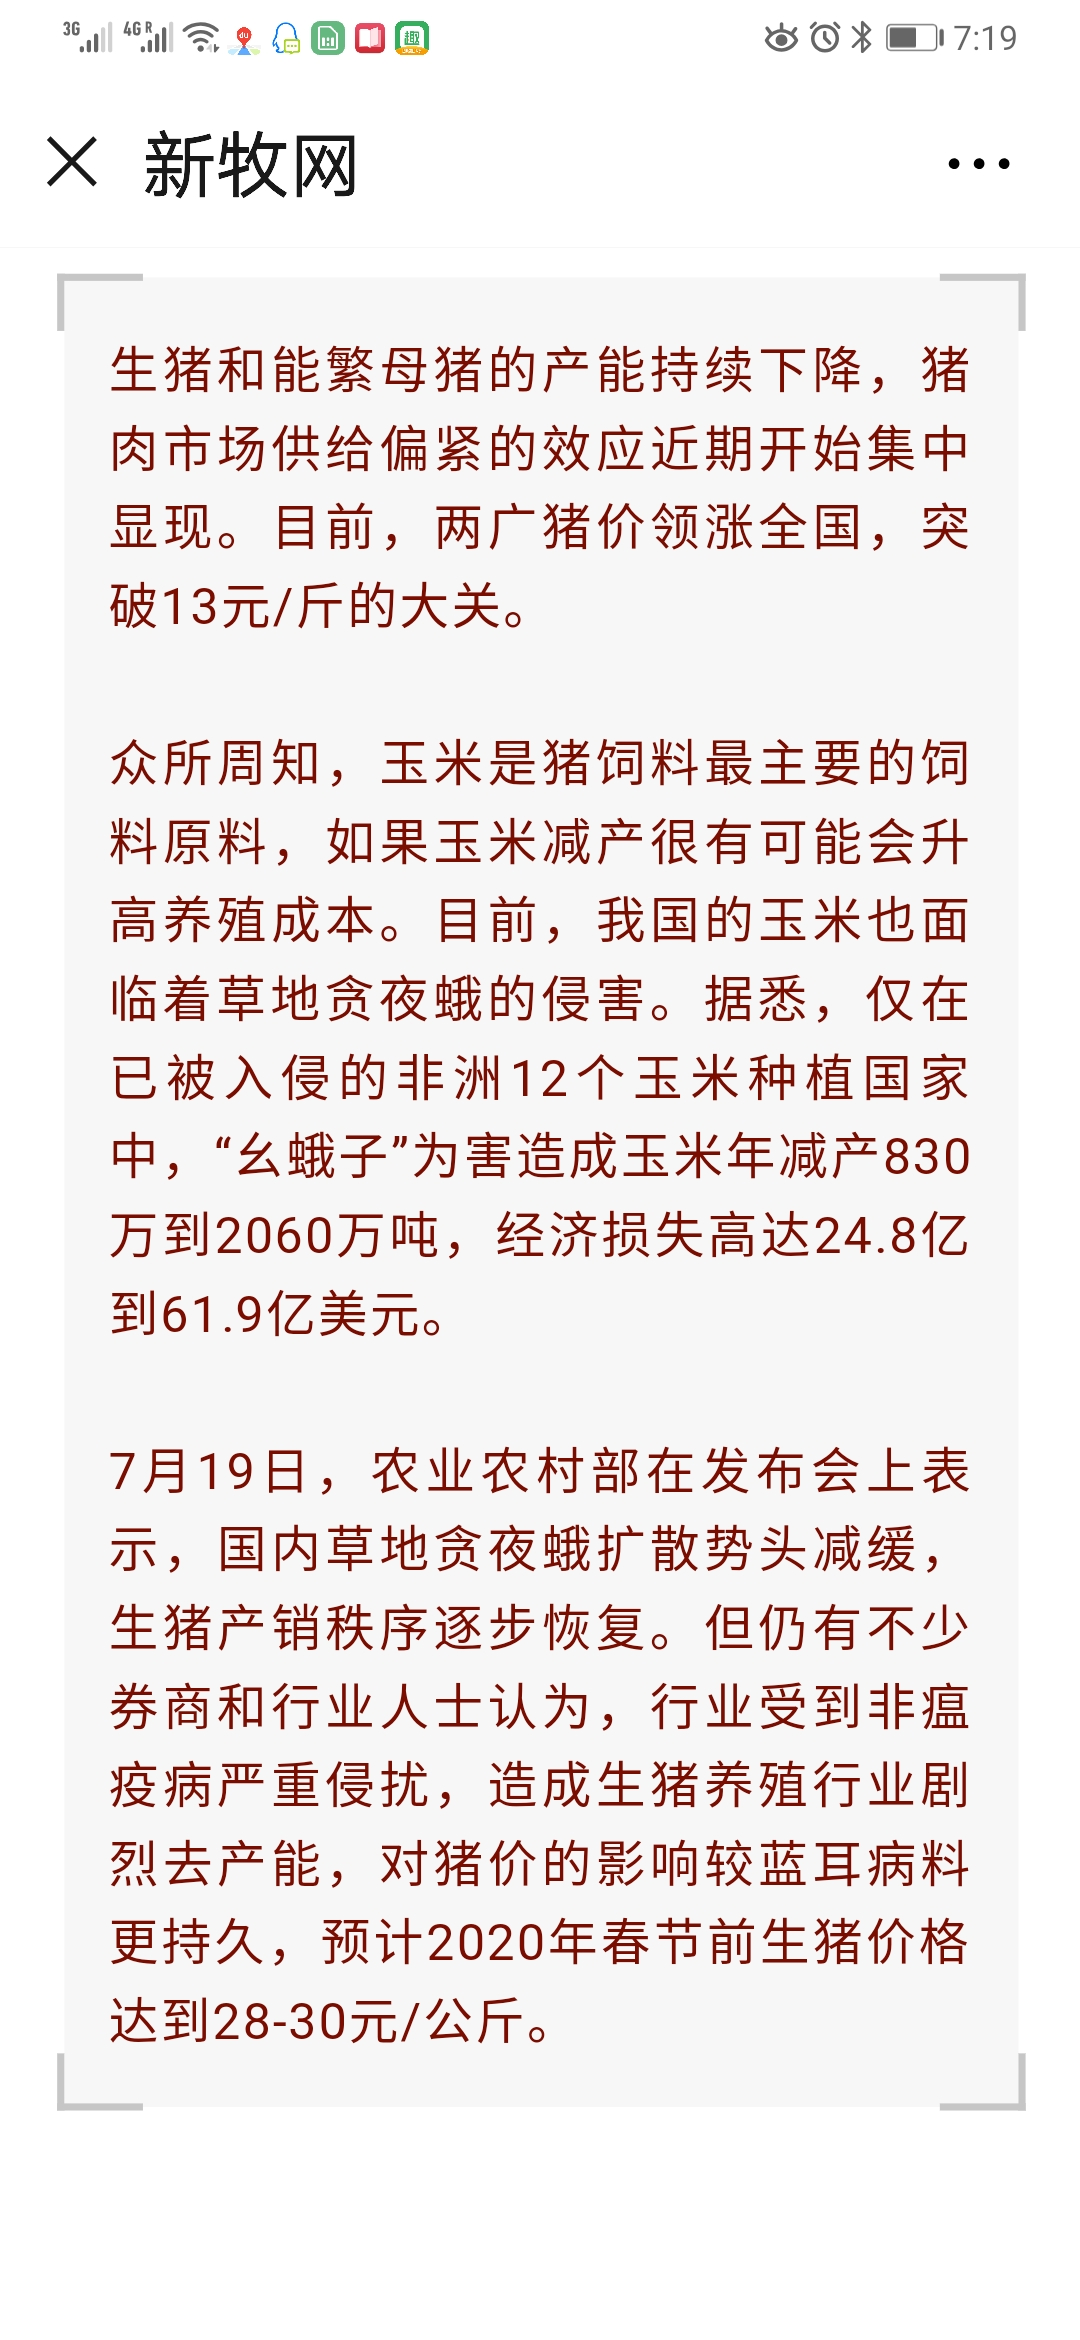 Screenshot_20190720_071923_com.tencent.mm.jpg